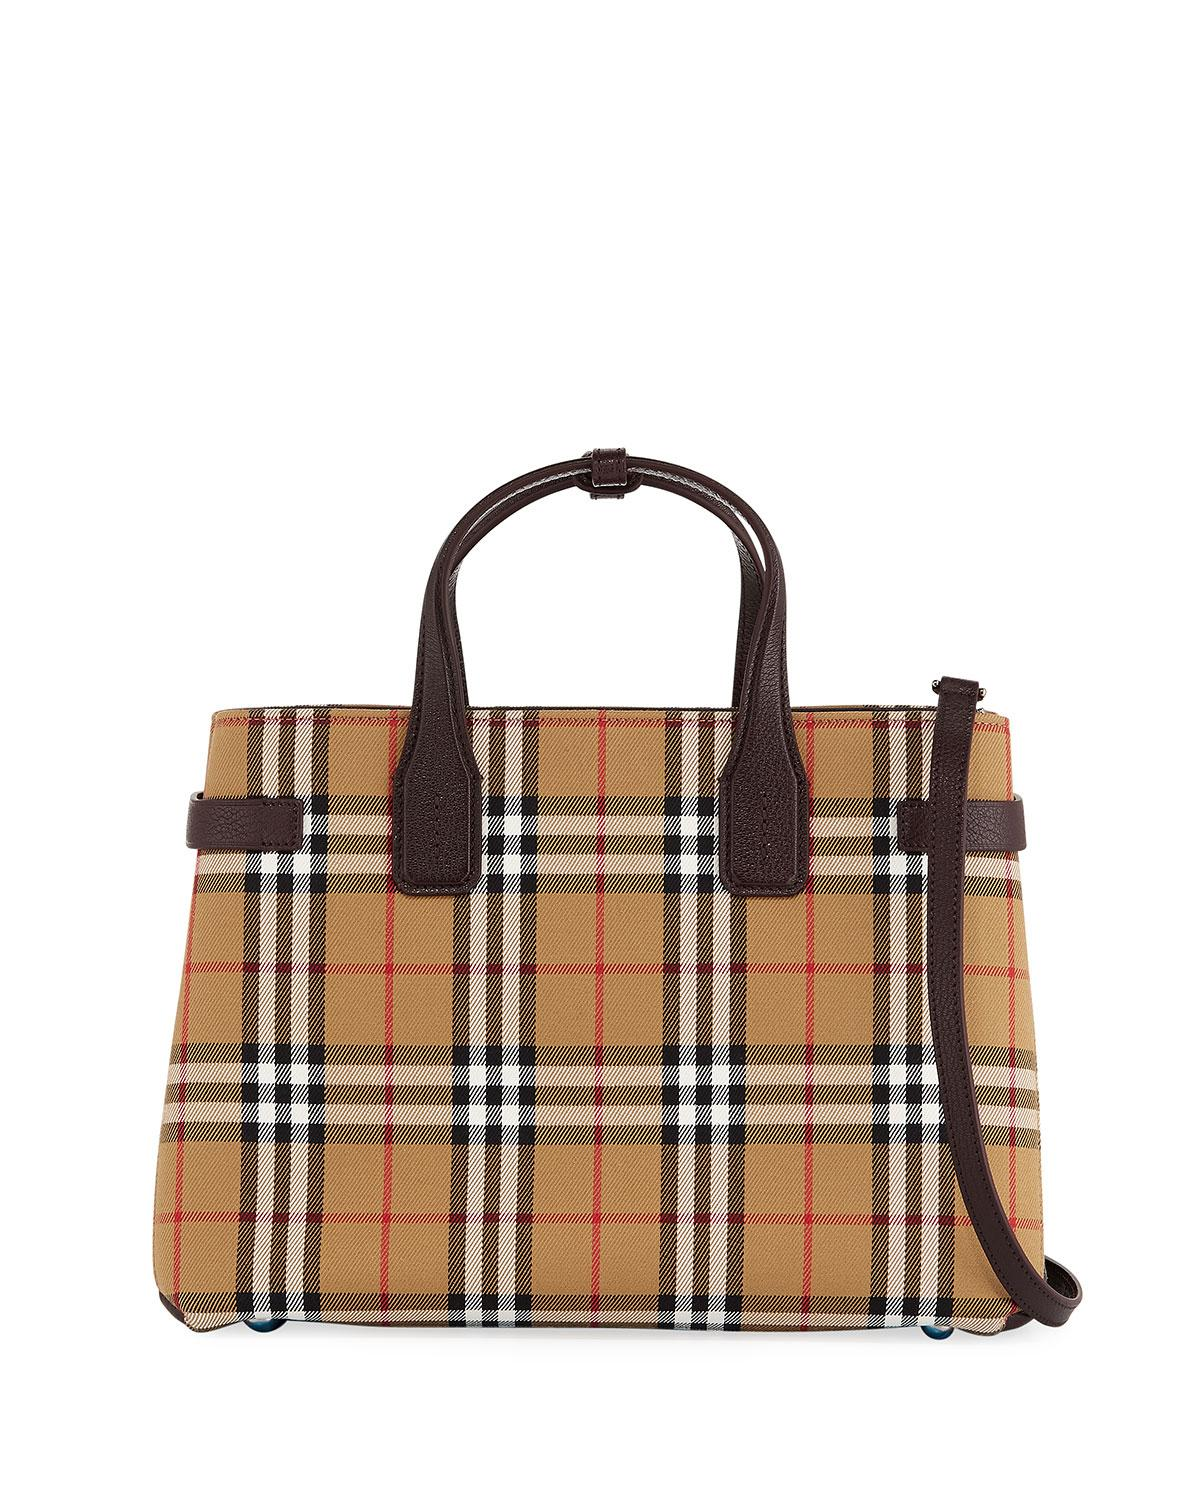 Lyst - Burberry Check Medium Tote Bag in Brown c690d84ccea05